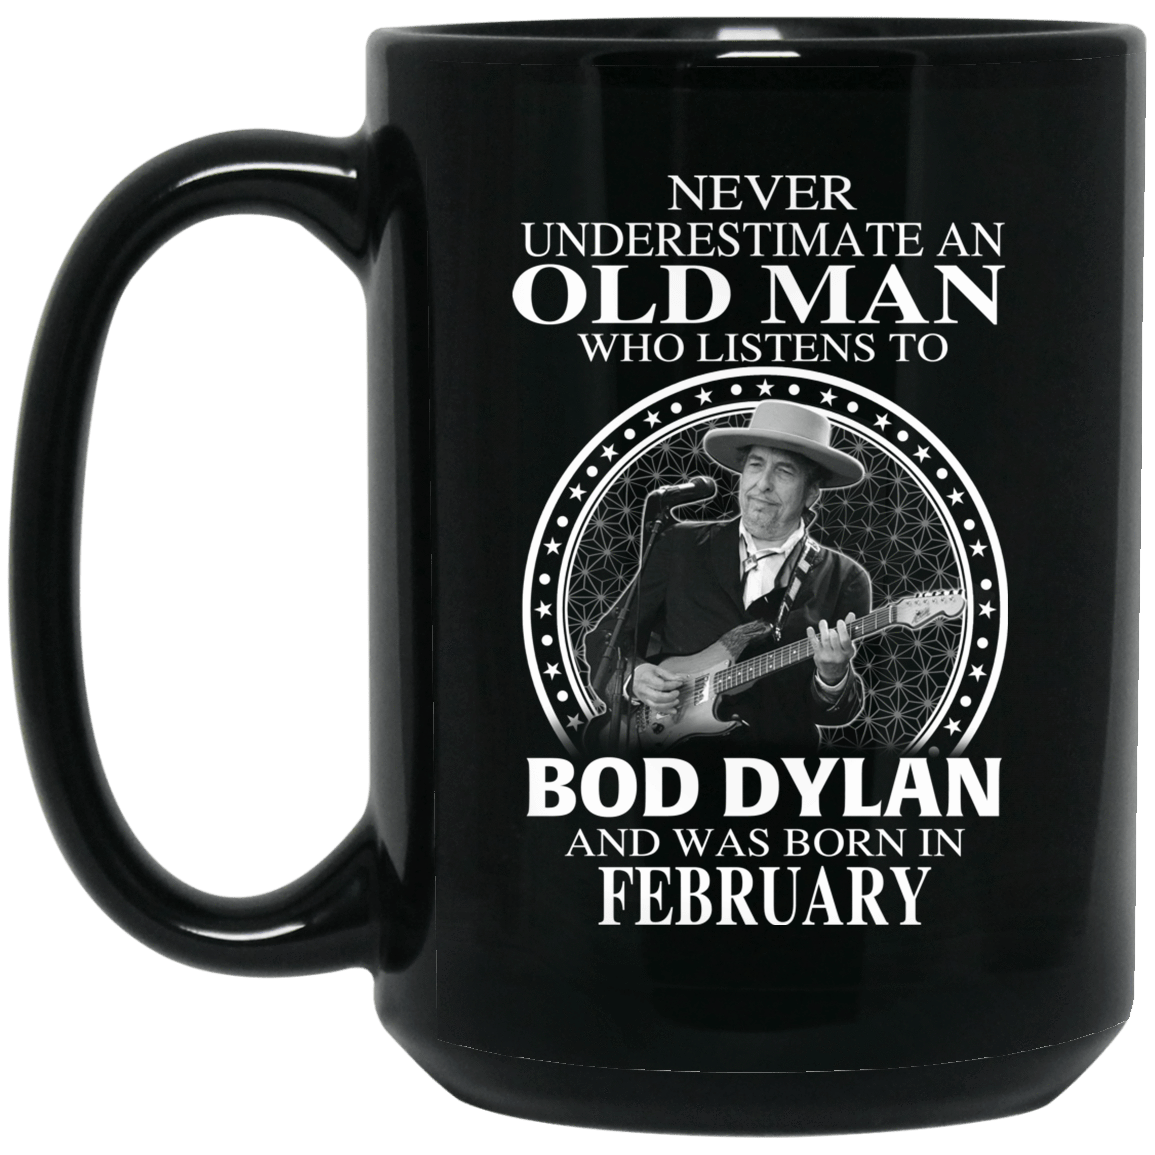 An Old Man Who Listens To Bob Dylan And Was Born In February Mug 1066-10182-76154394-49311 - Tee Ript